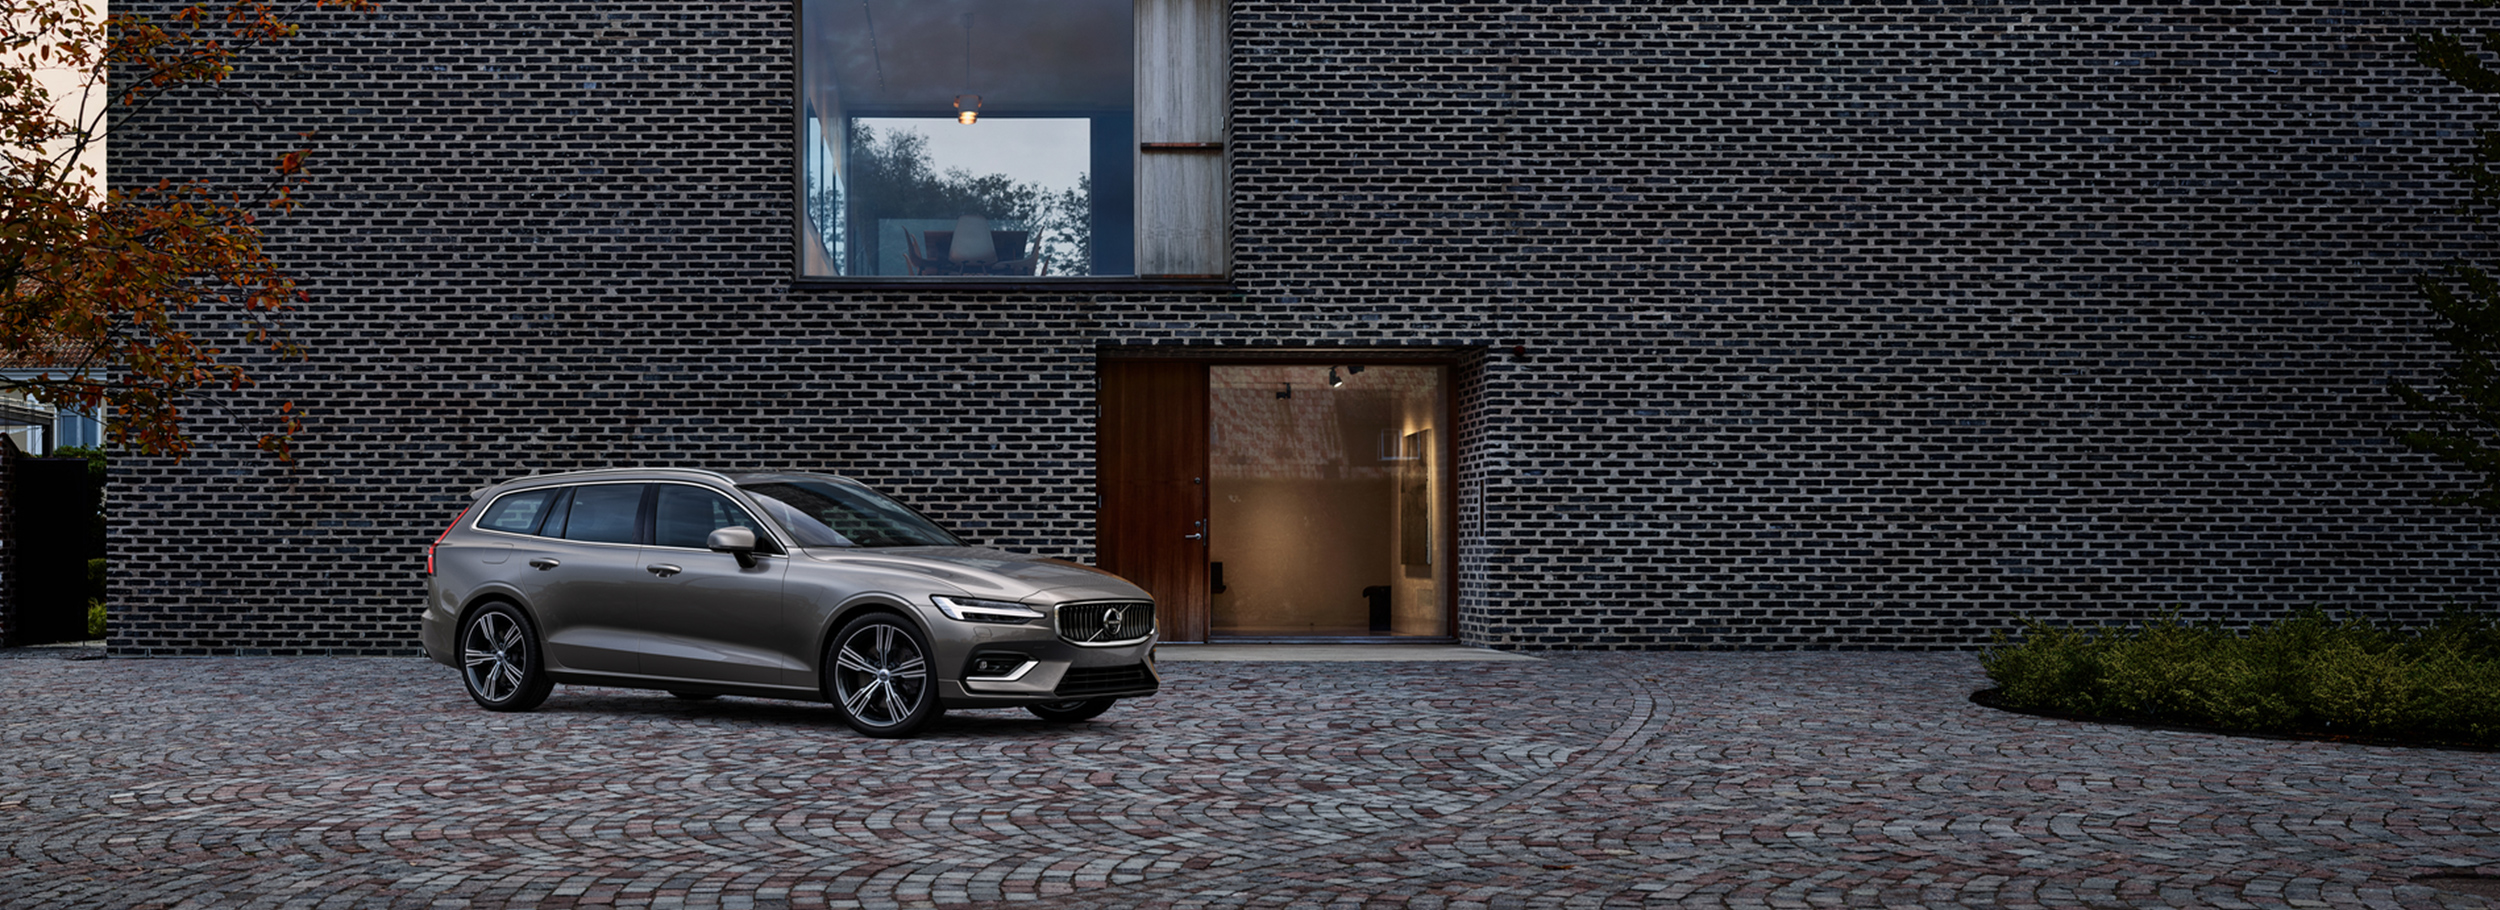 Company structure | Volvo Car Group